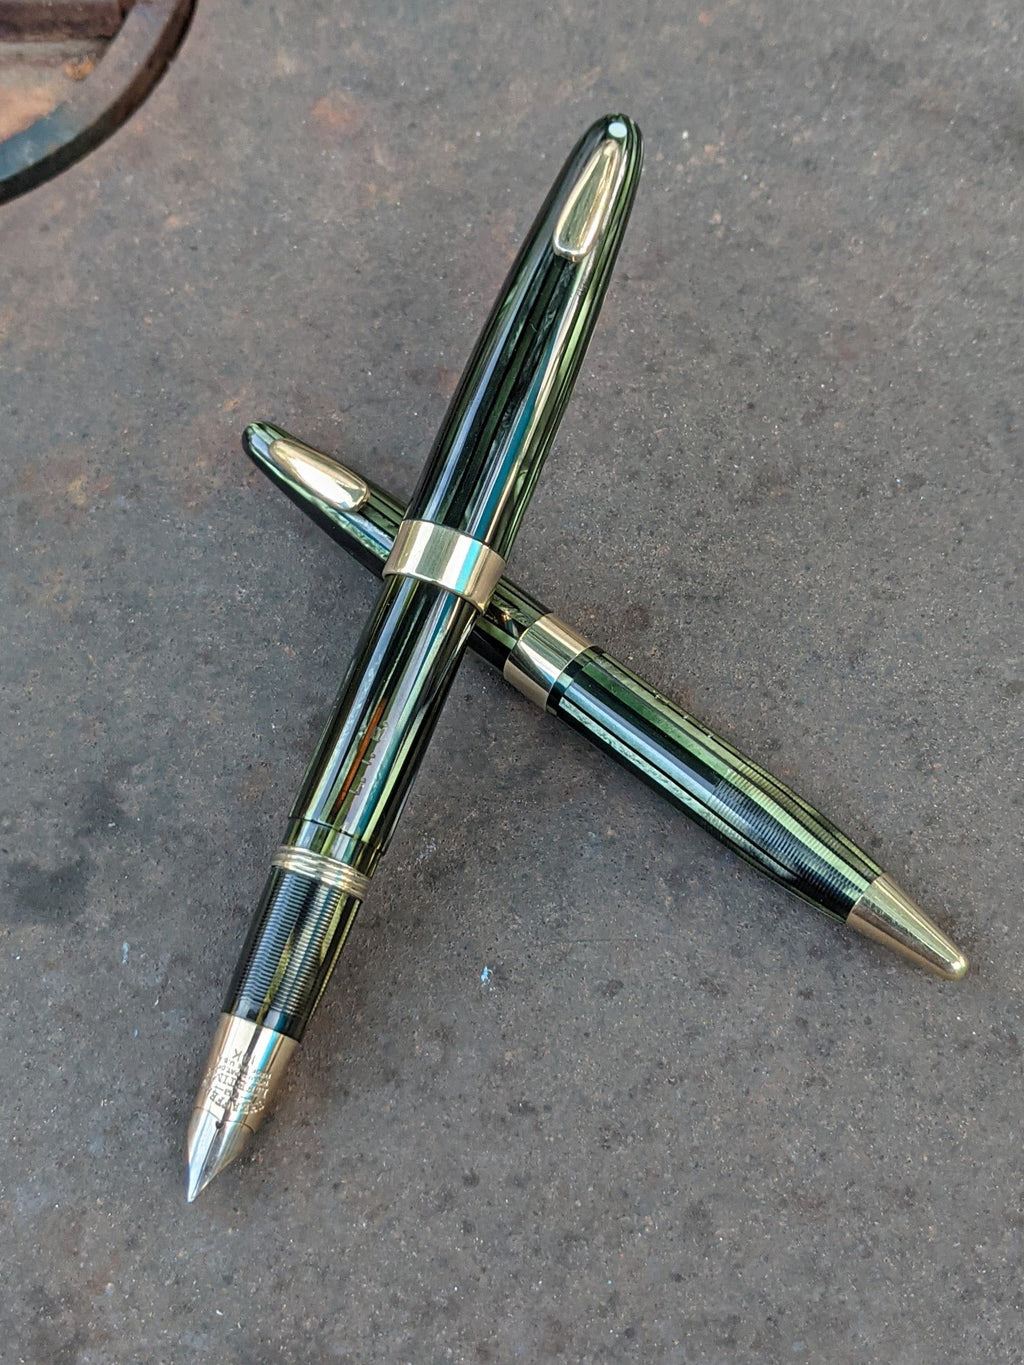 1943-5 Marine Green Sheaffer Triumph Tuckaway Statesman set - stubby fine-medium nub